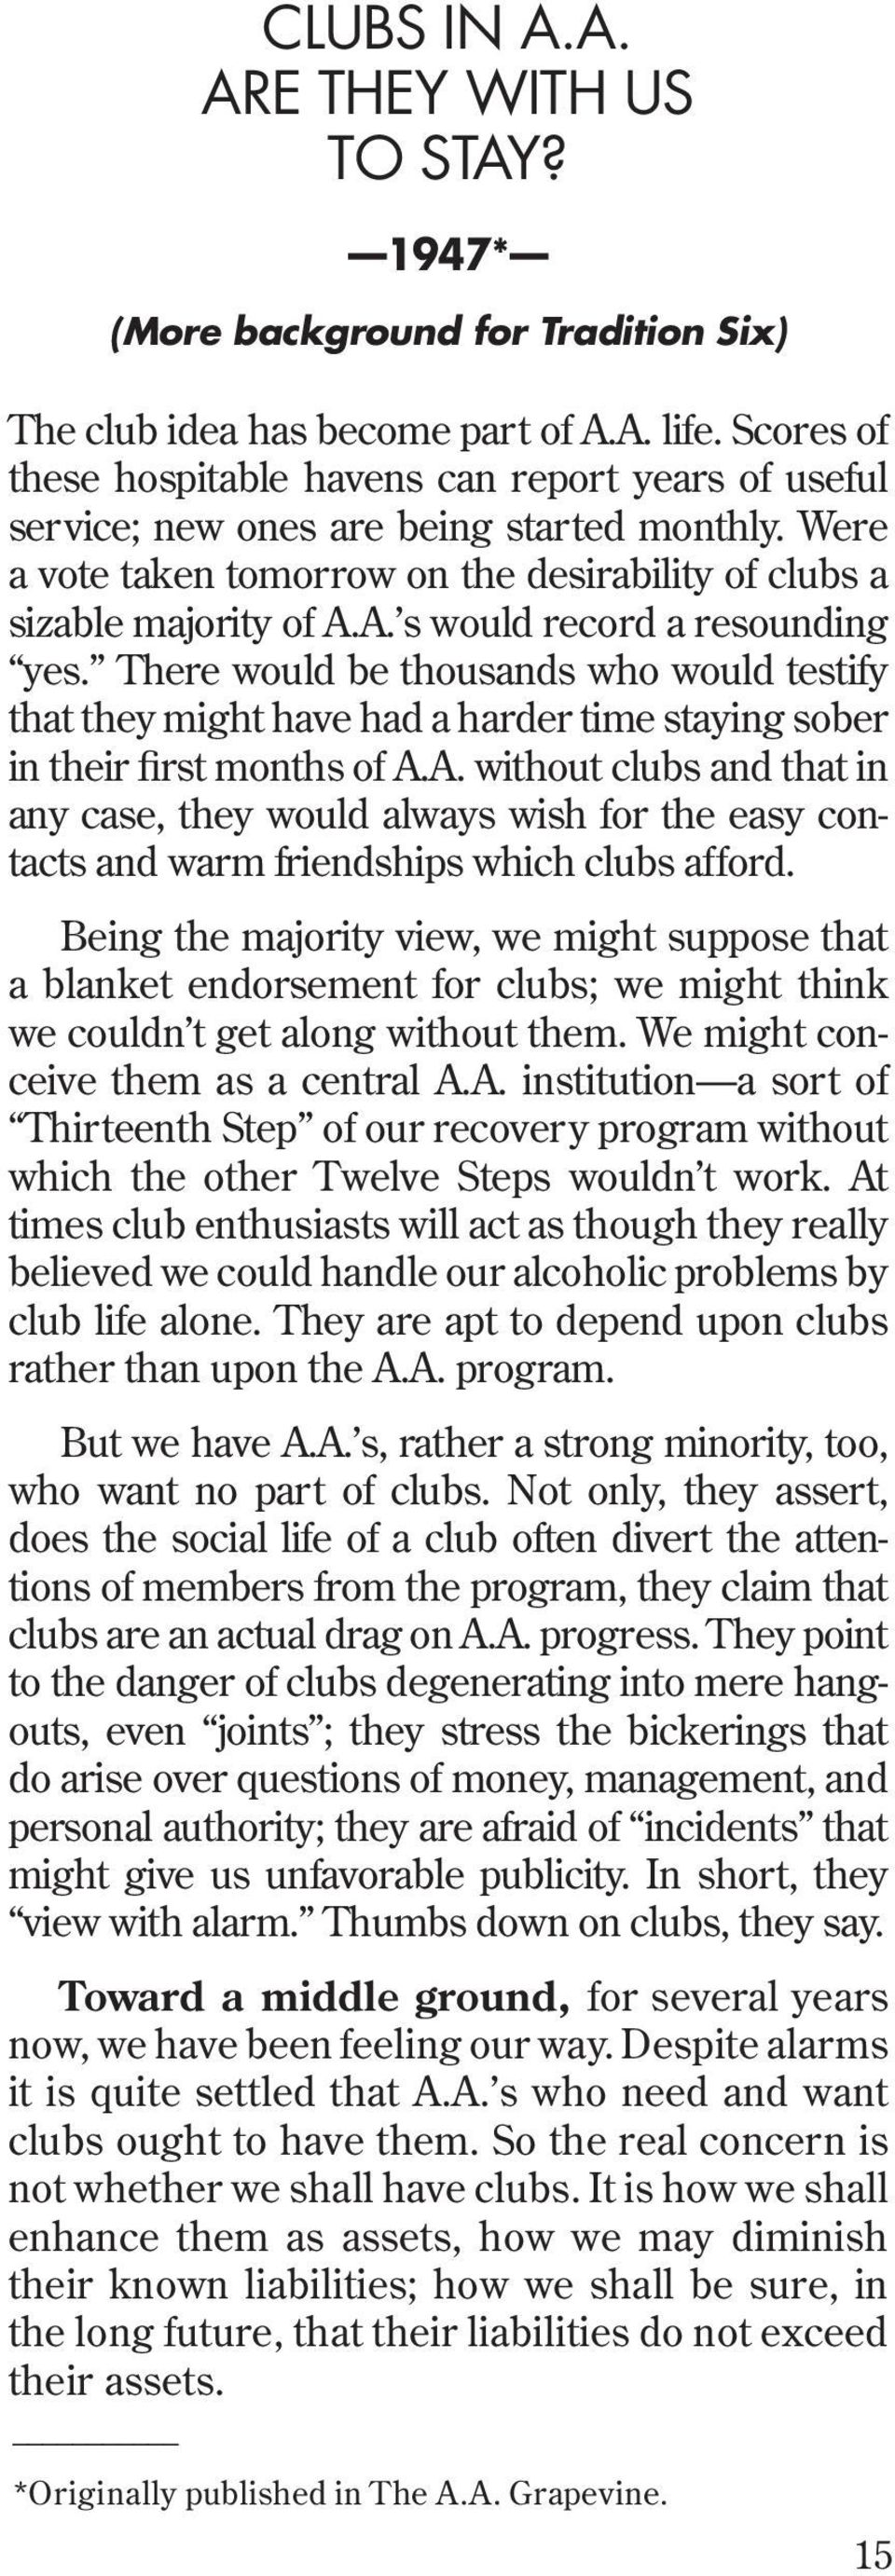 A. s would record a resounding yes. There would be thousands who would testify that they might have had a harder time staying sober in their first months of A.A. without clubs and that in any case, they would always wish for the easy contacts and warm friendships which clubs afford.